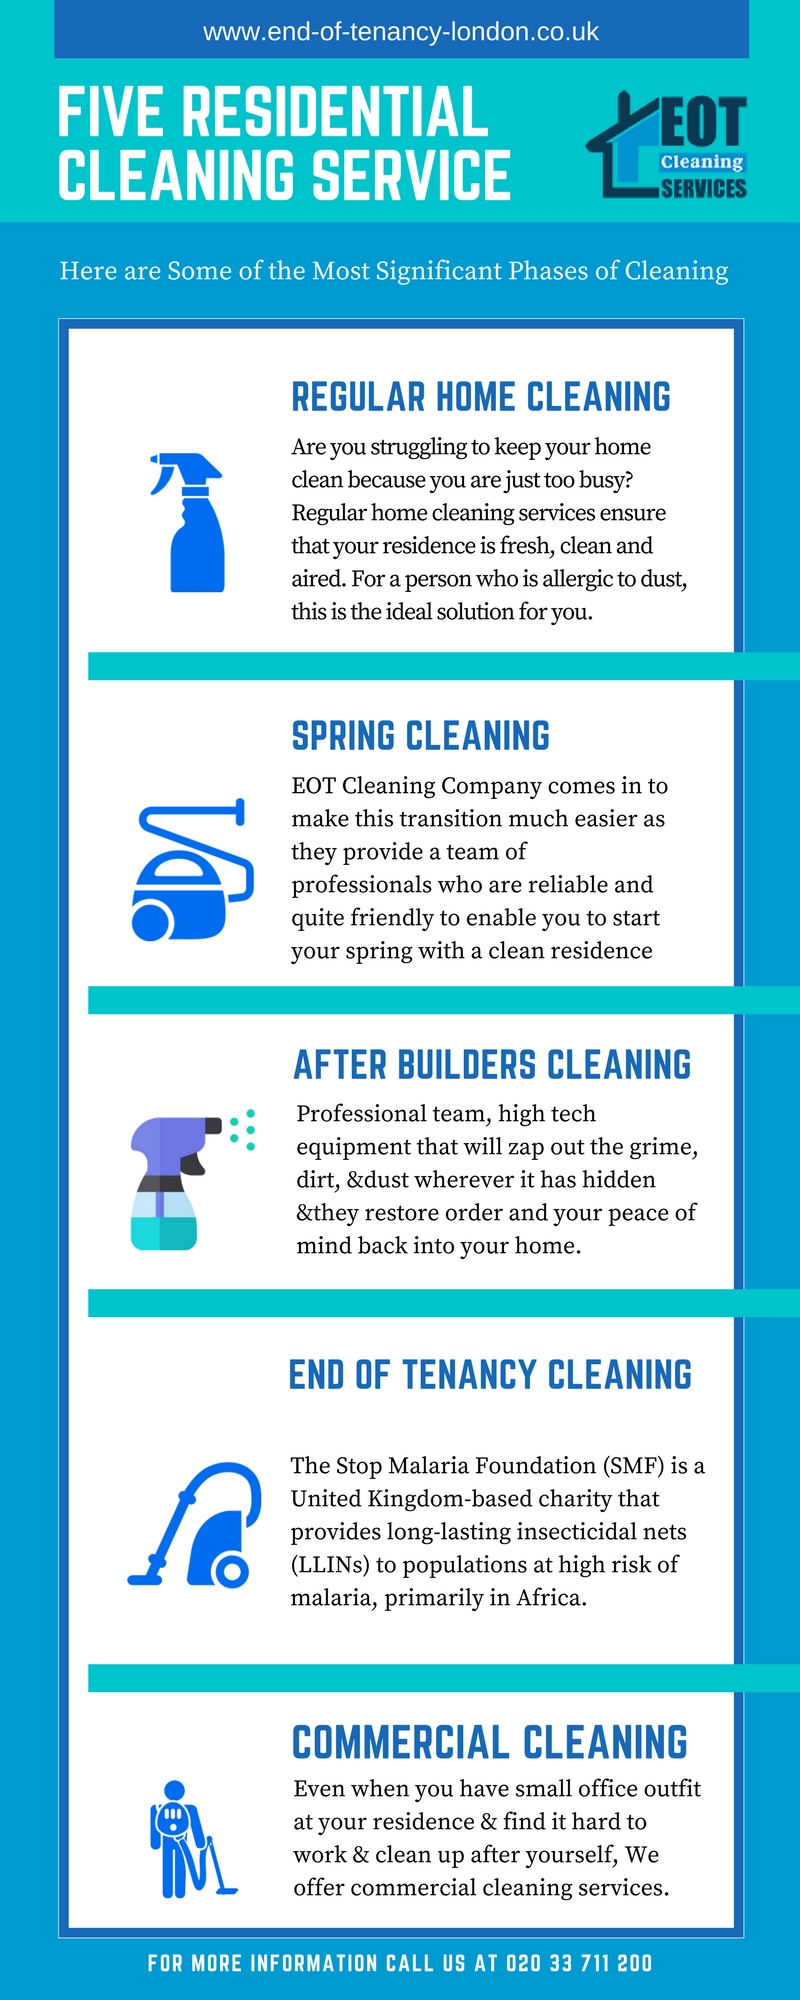 5-Residential-Cleaning-Services.jpg